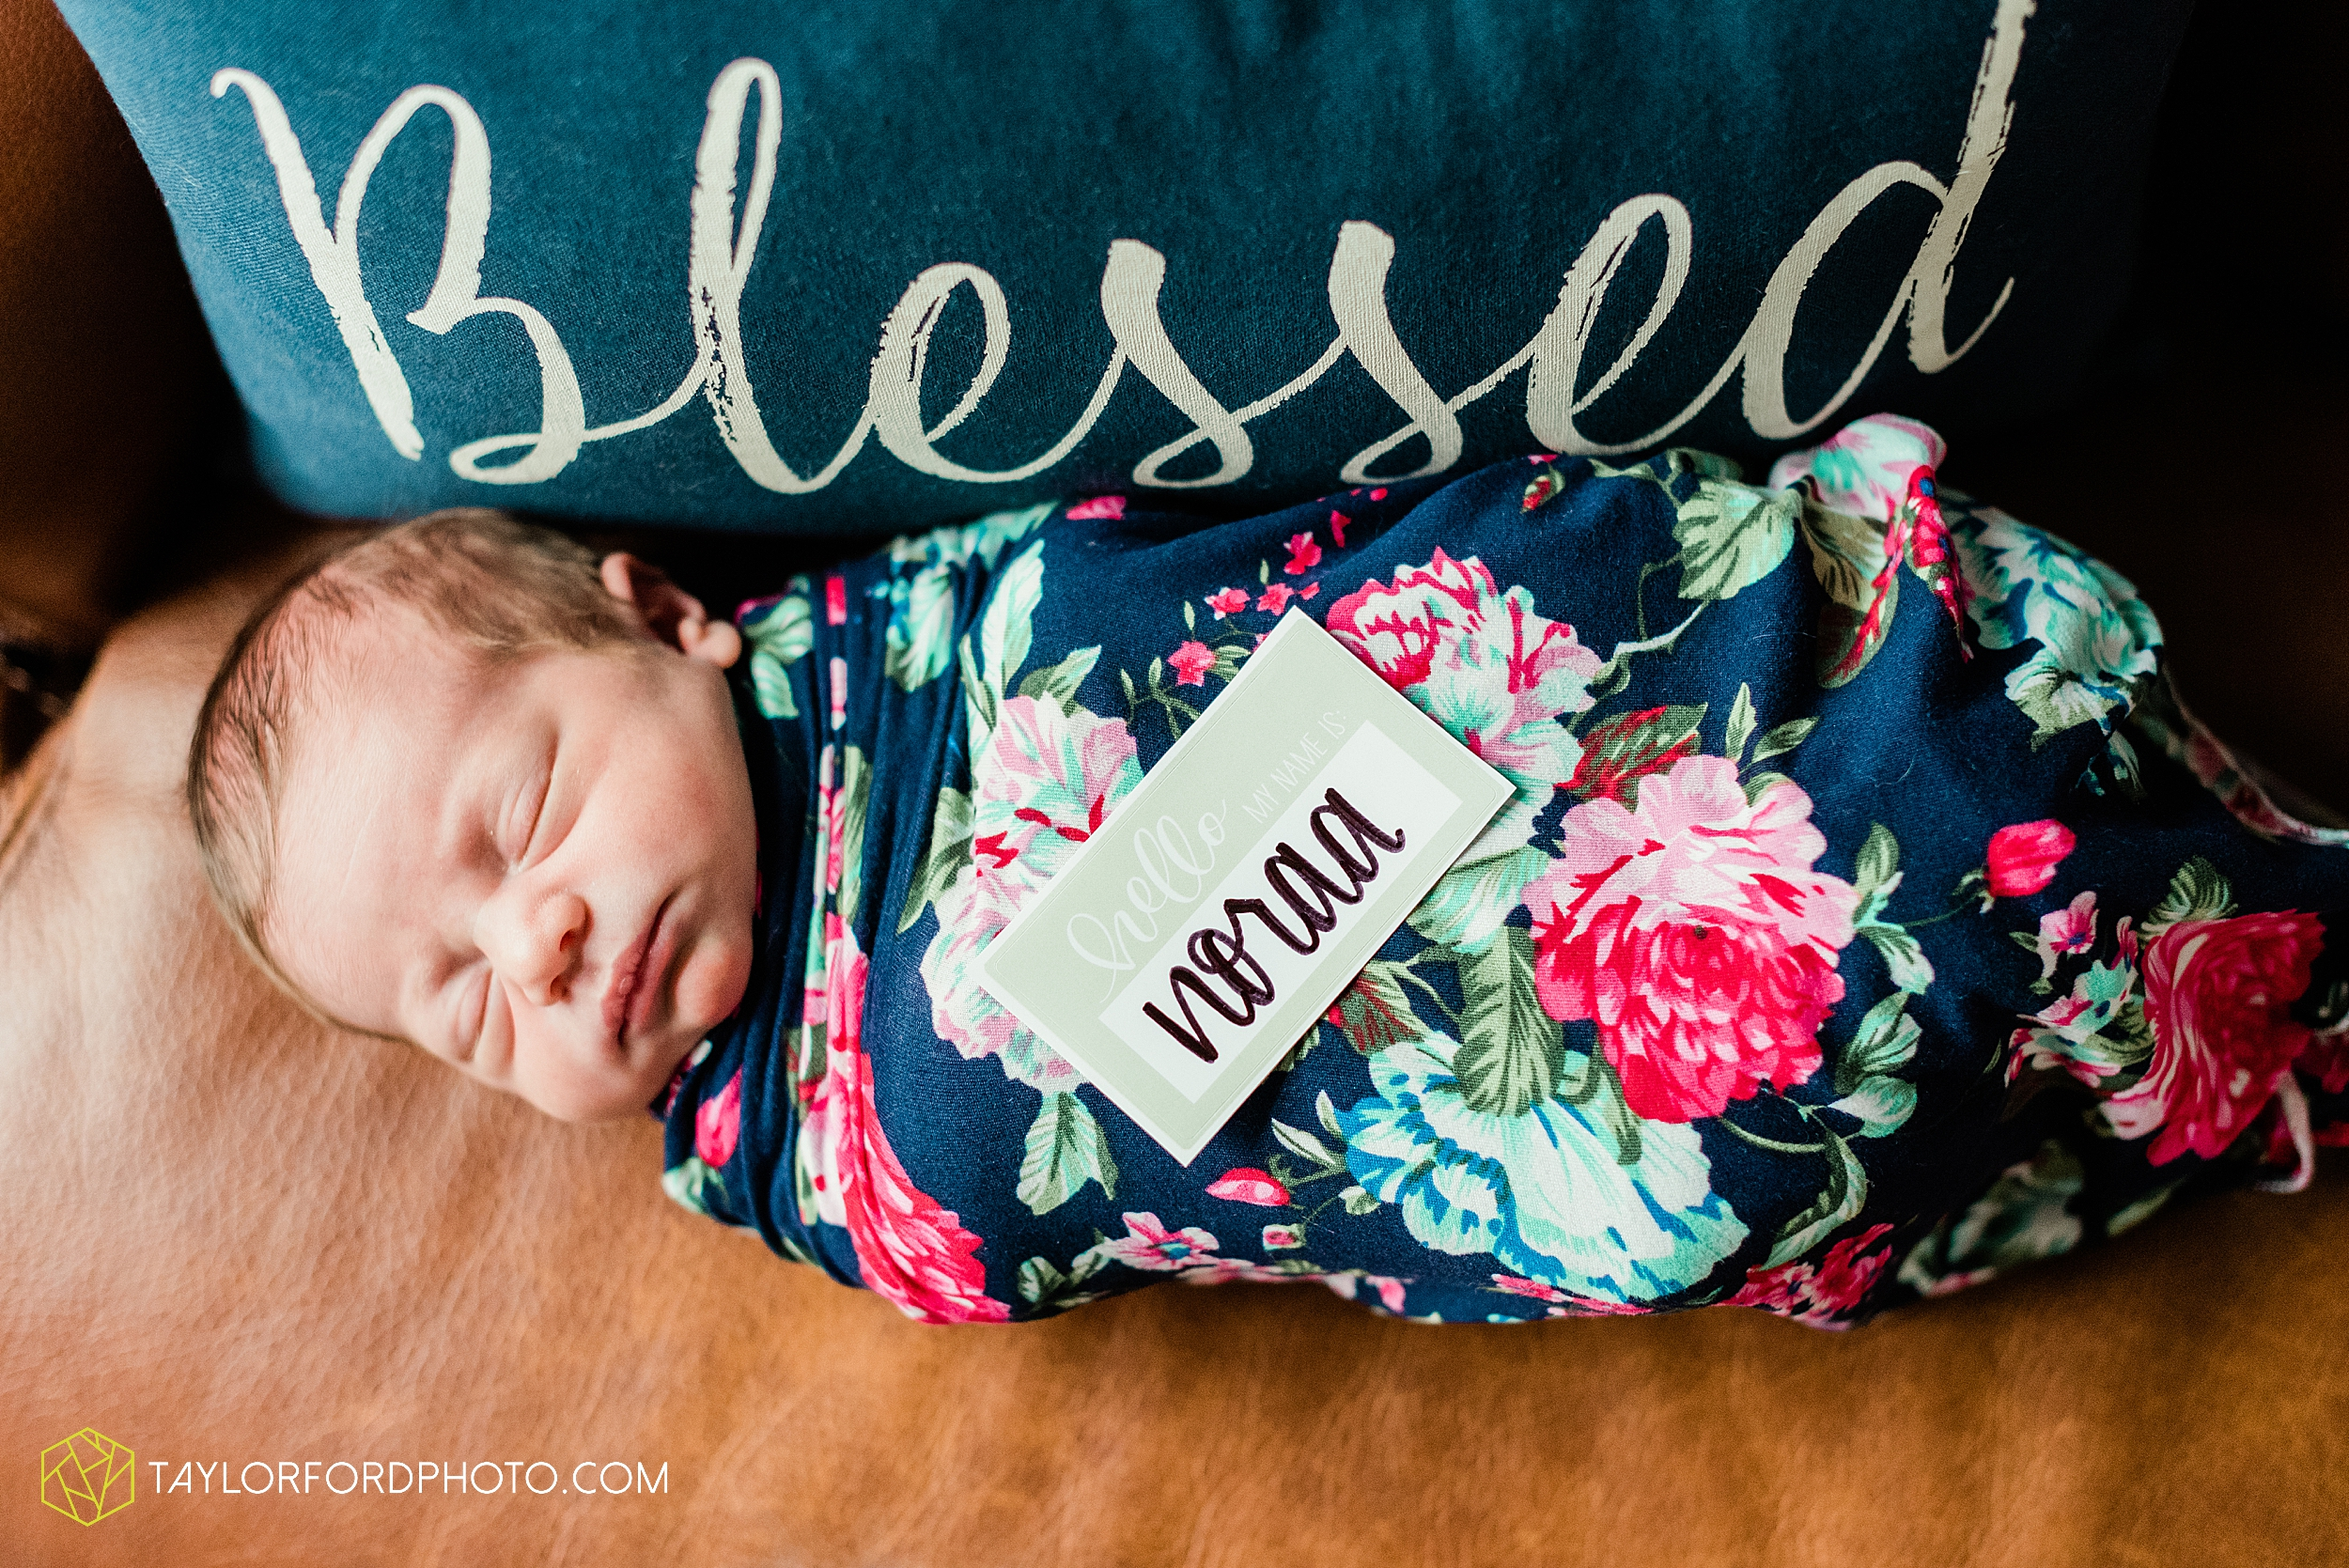 ashley-aaron-noraa-lifestyle-at-home-family-newborn-blacklick-columbus-ohio-photography-taylor-ford-hirschy-photographer_2348.jpg